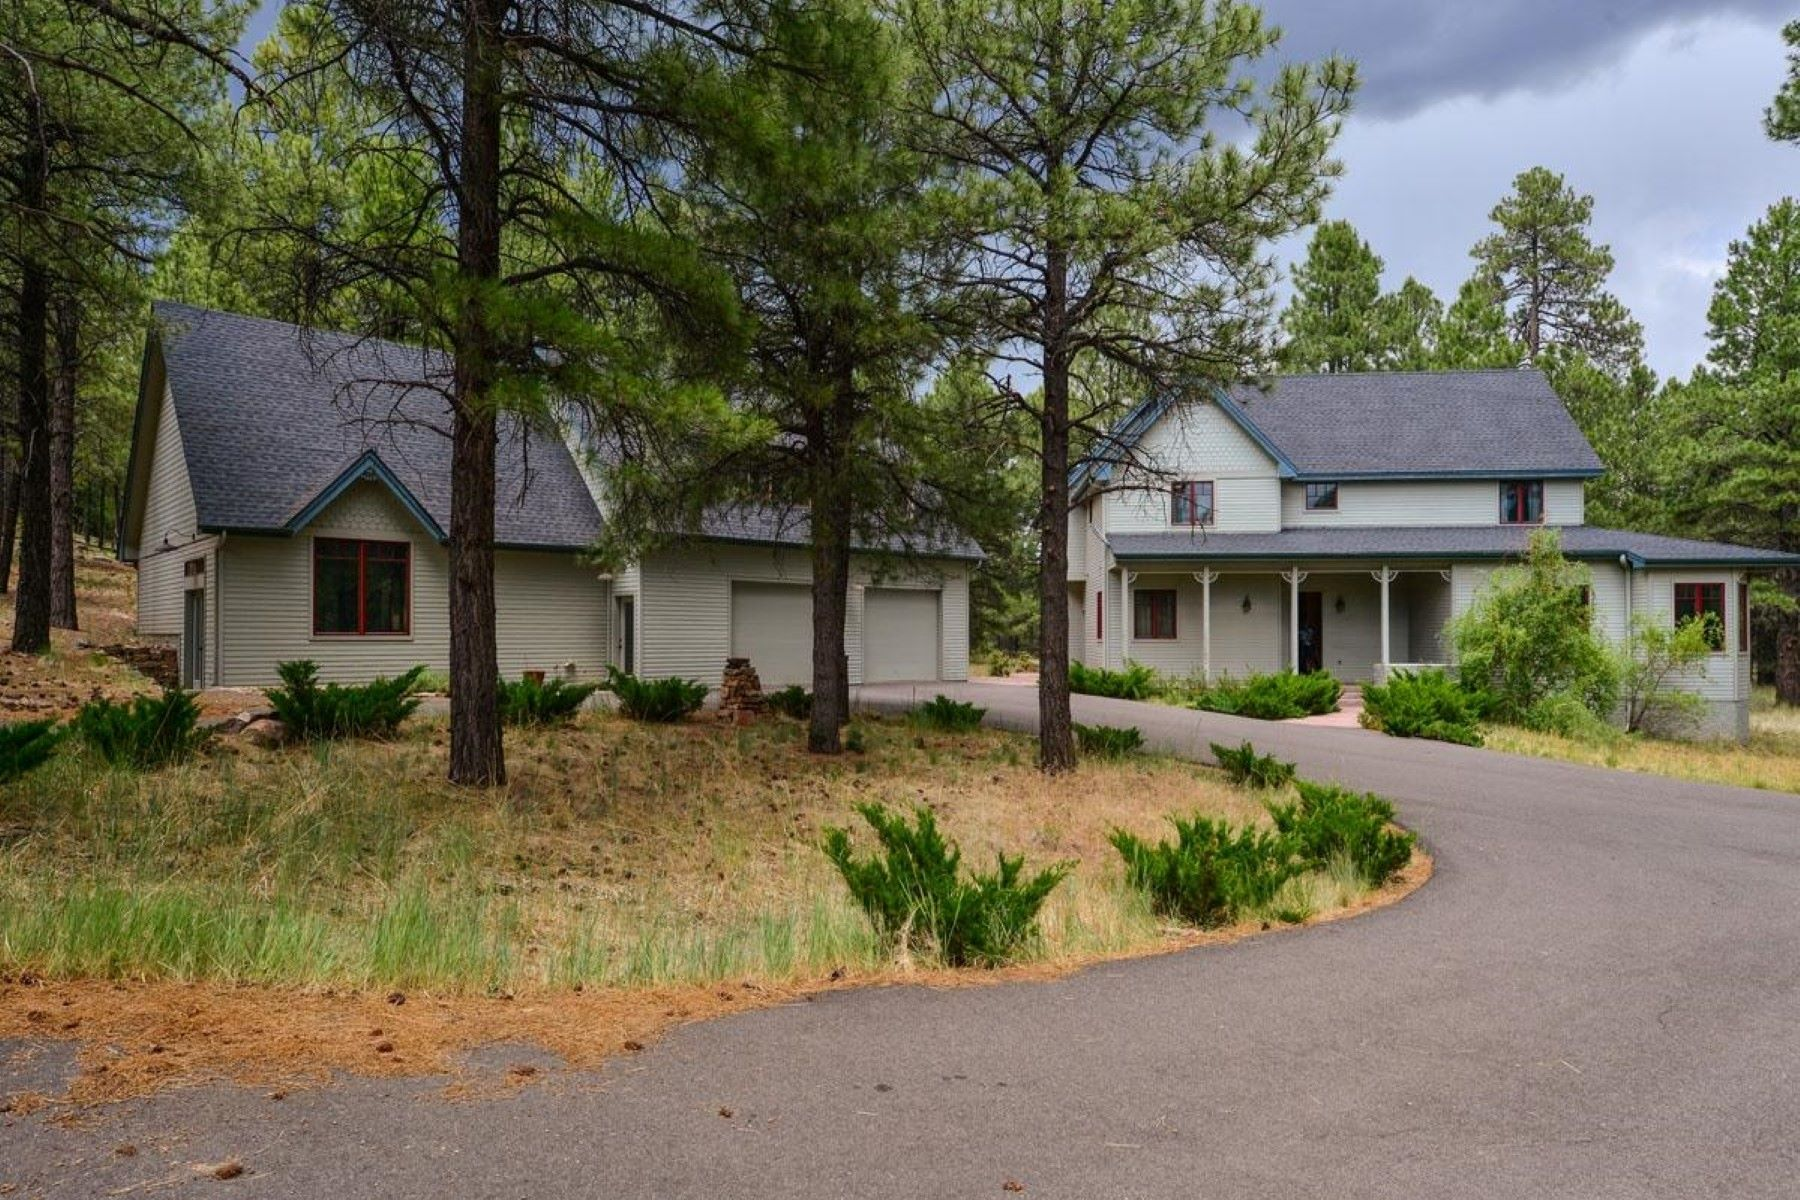 獨棟家庭住宅 為 出售 在 Custom Ranch with views of the San Francisco Peaks 2340 Constitution Blvd, Flagstaff, 亞利桑那州, 86005 美國